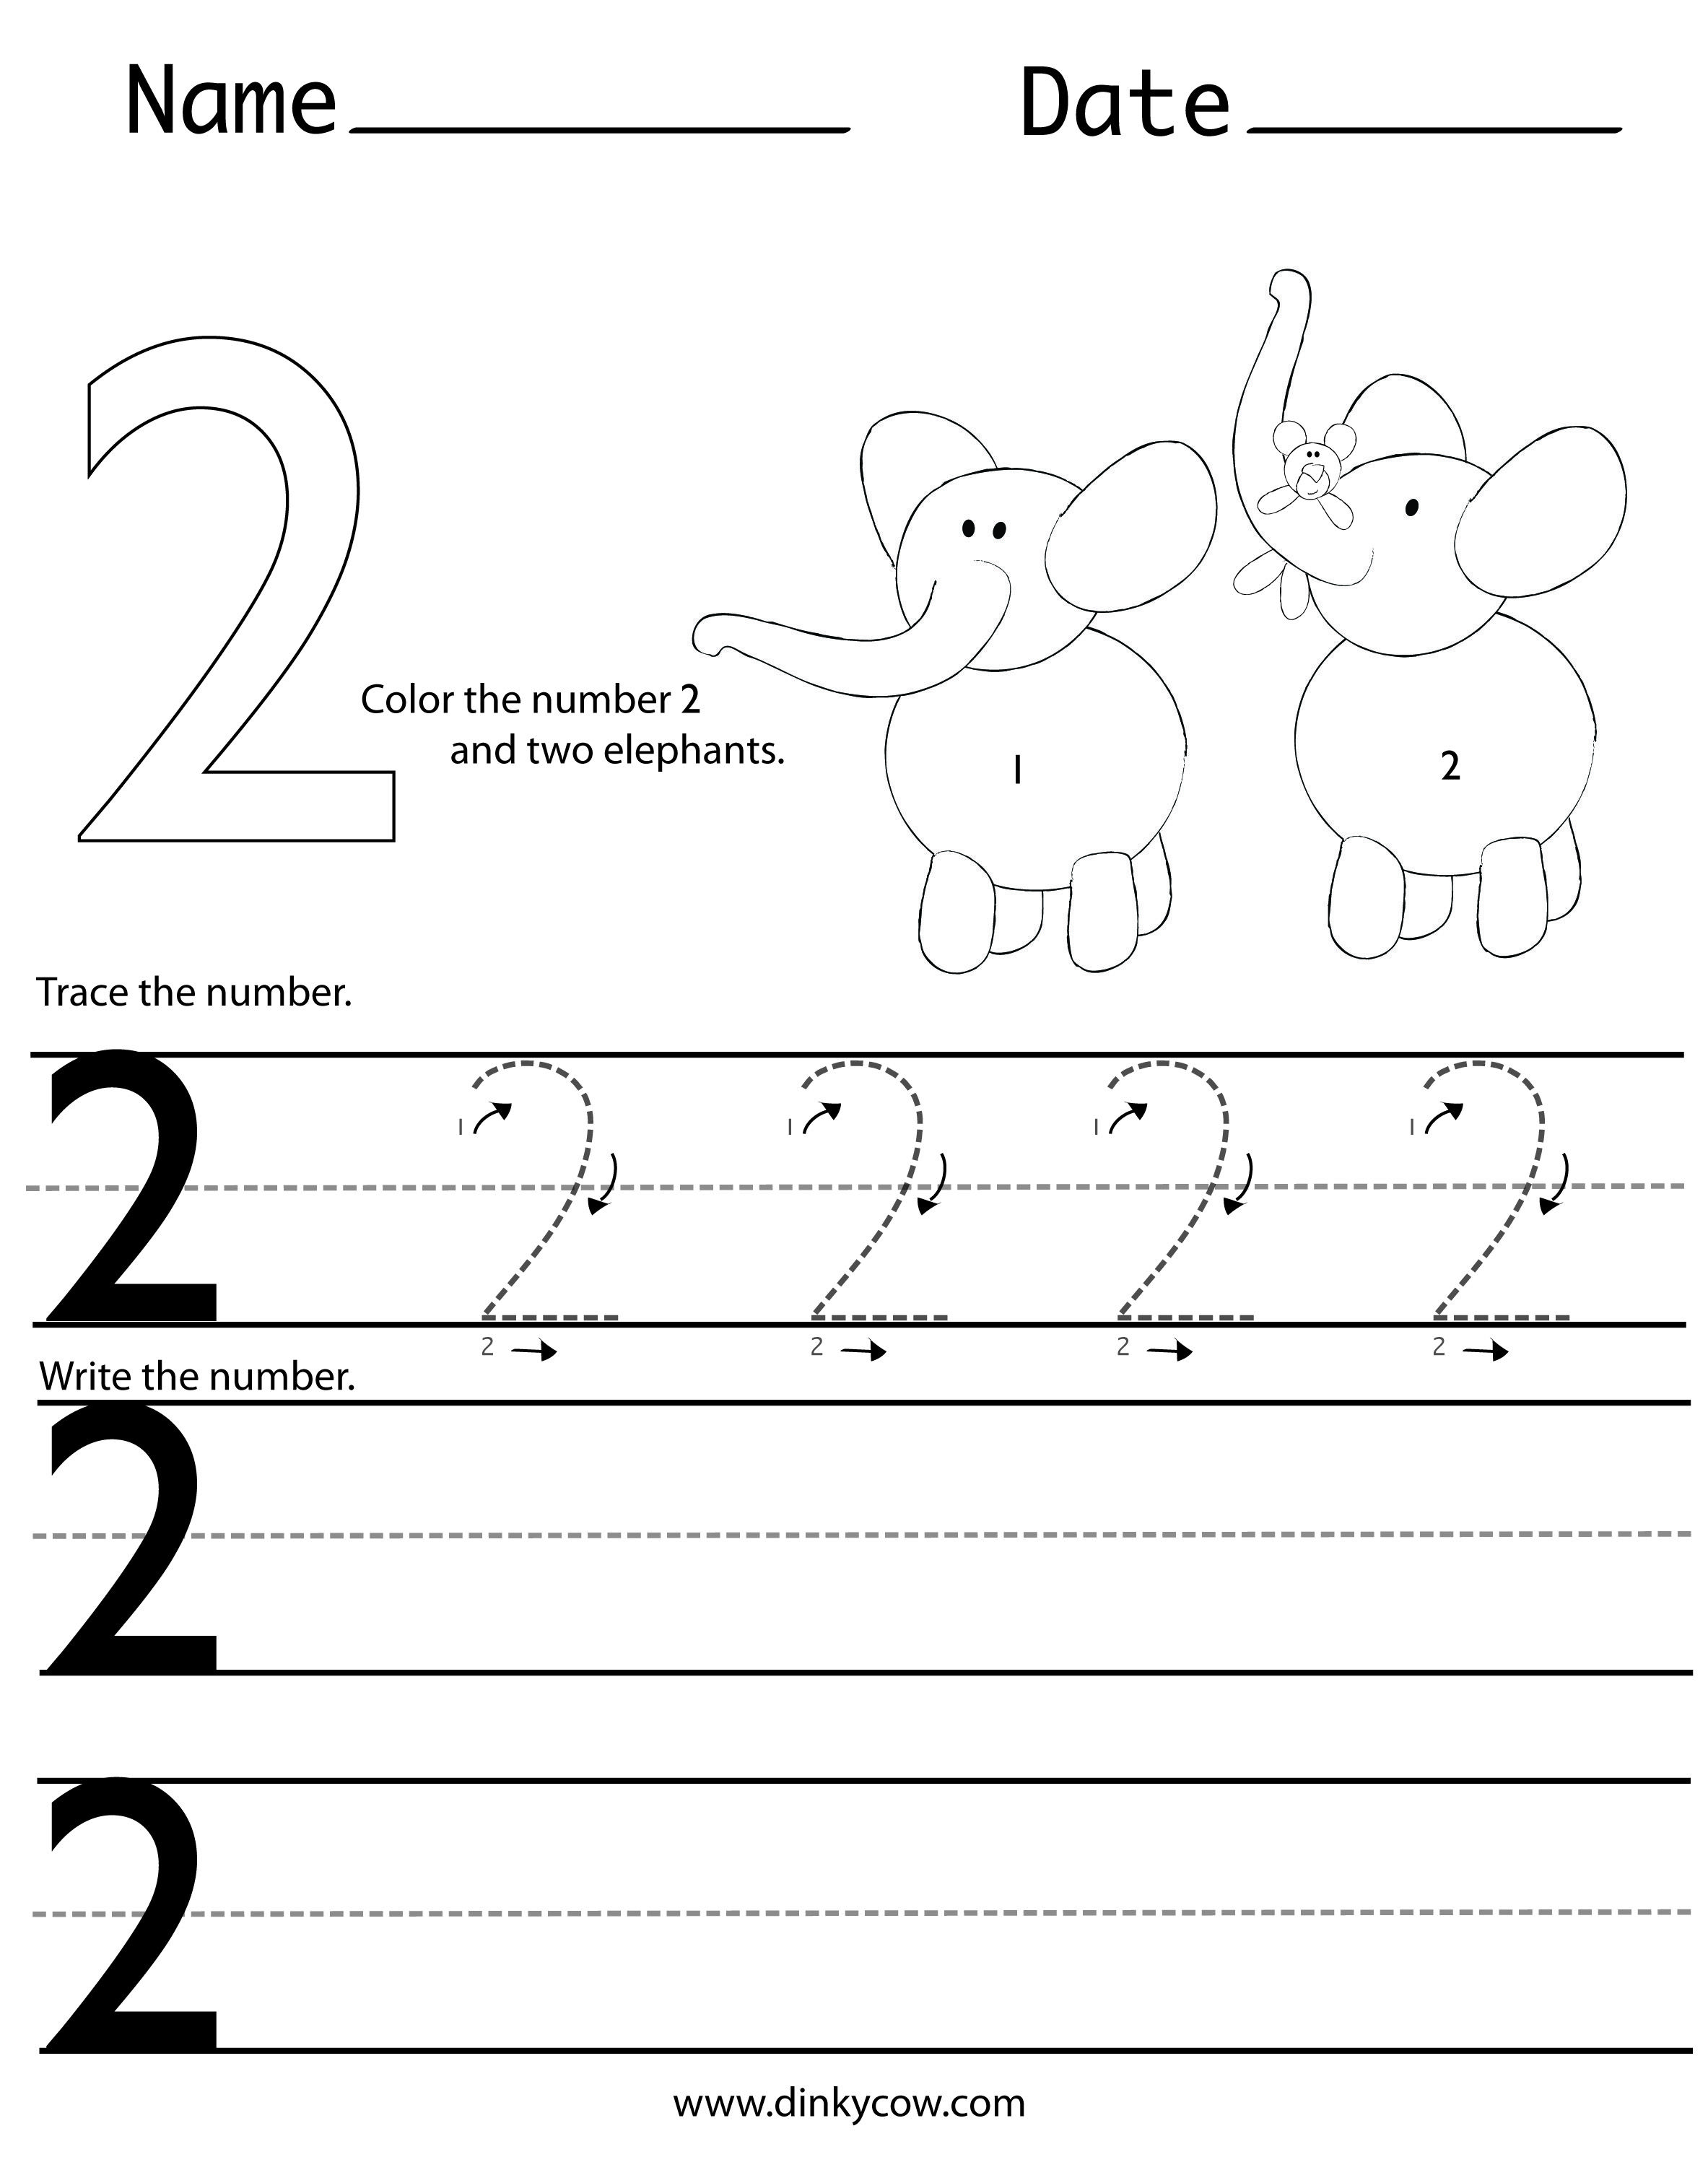 Writing Number Worksheets Printable Daphne Smith Pin